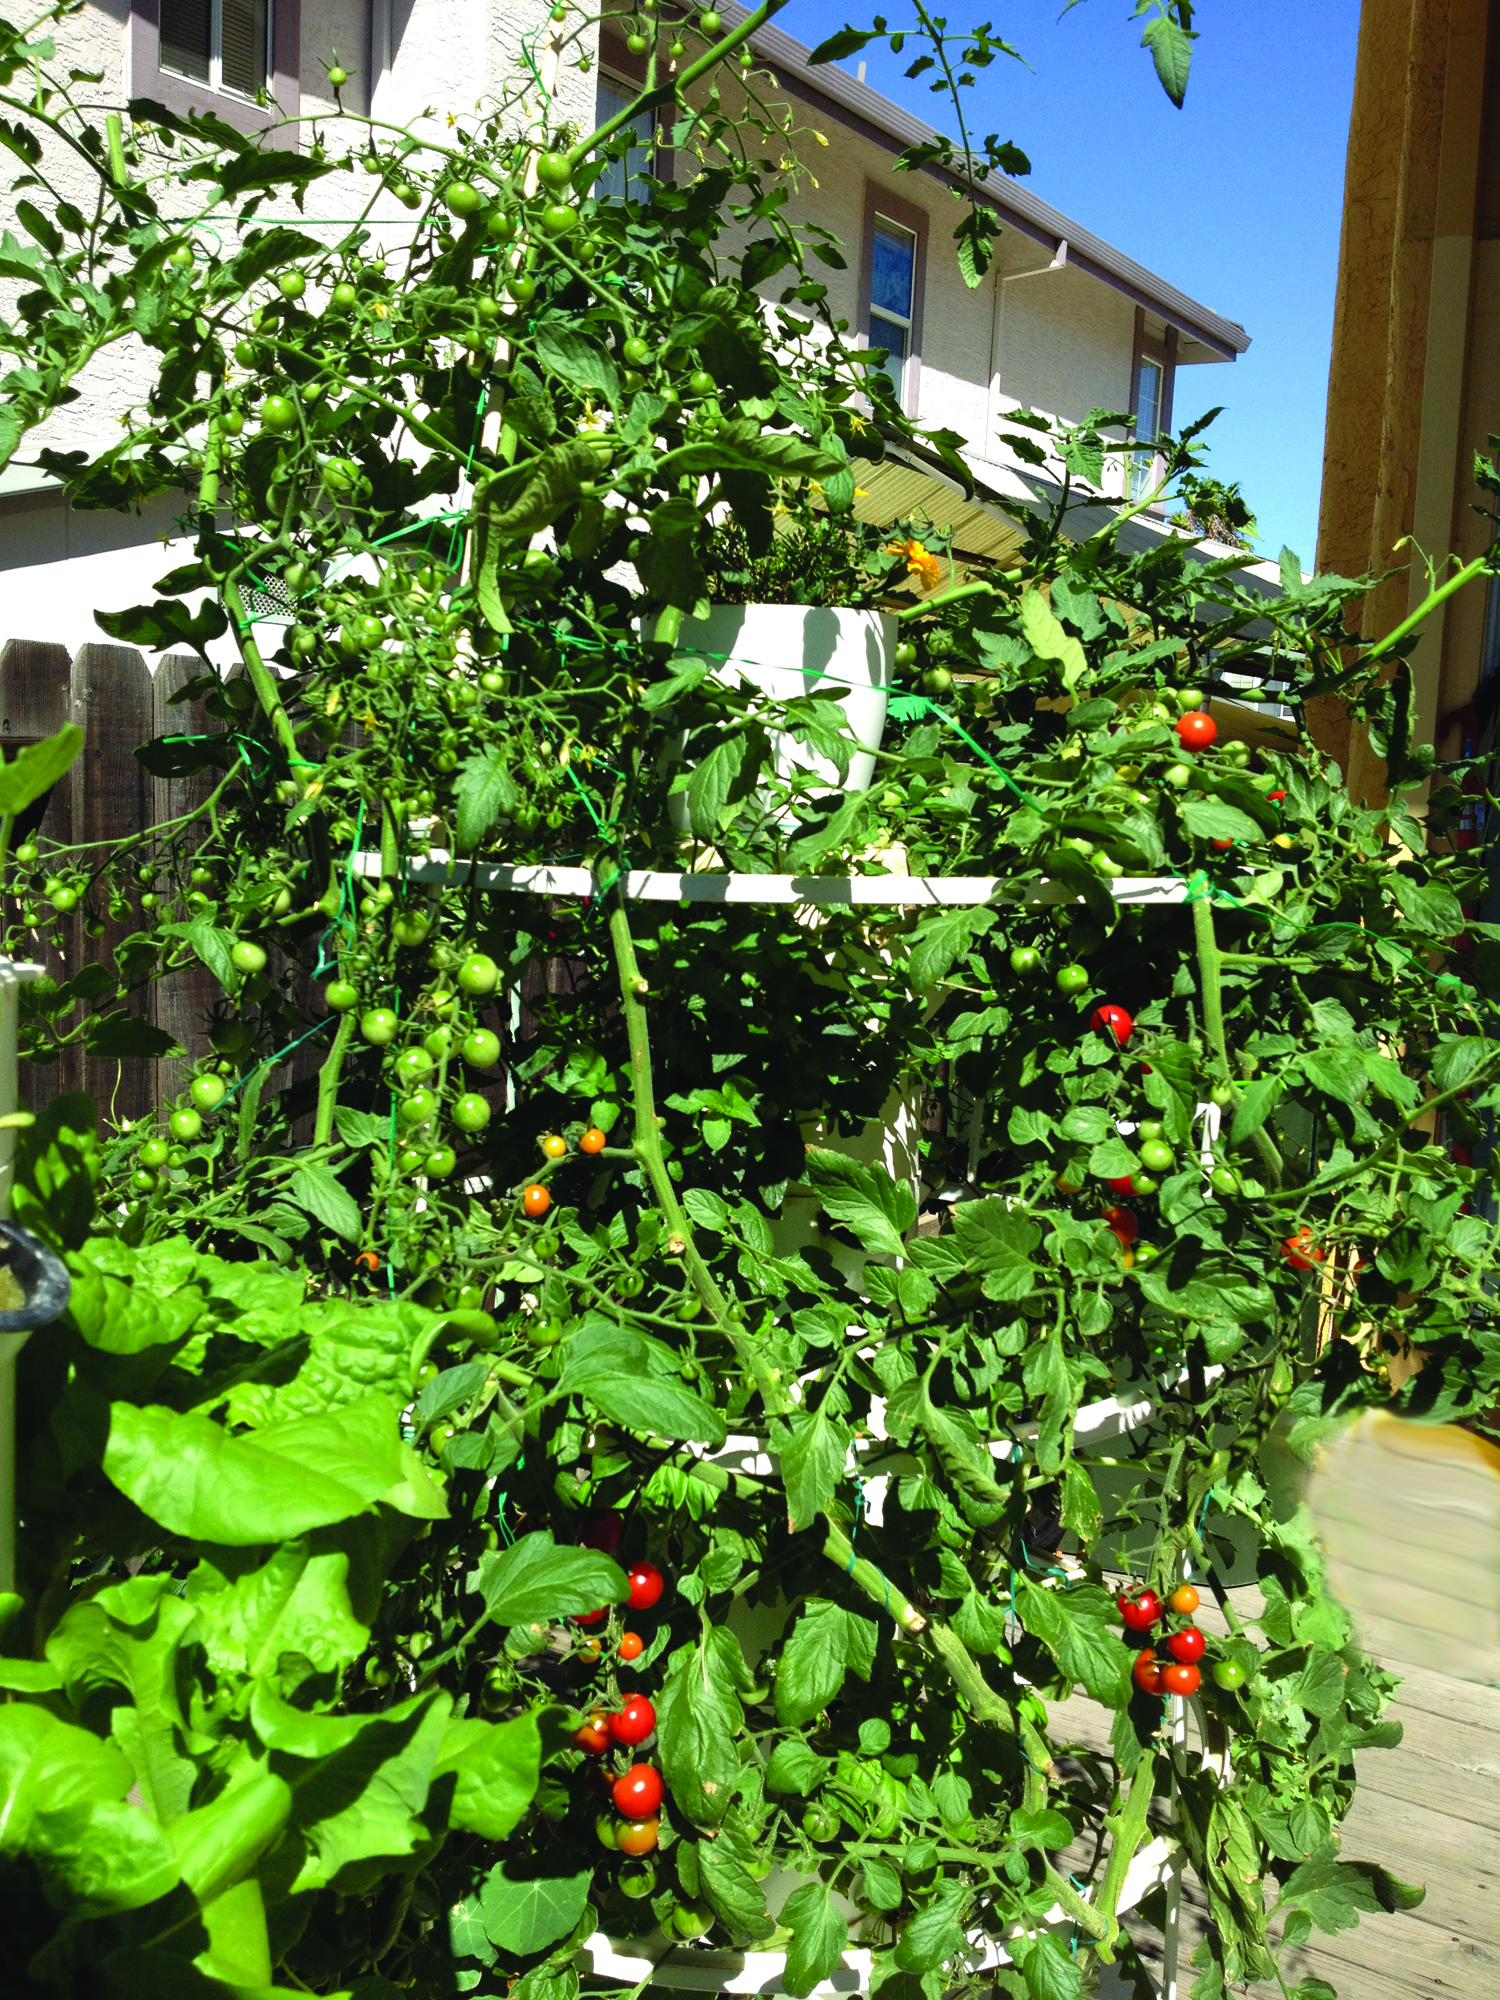 tomatoes 7 27 12 Good Health Begins with Good Organic Food: Now You Can More Easily Grow Your Own